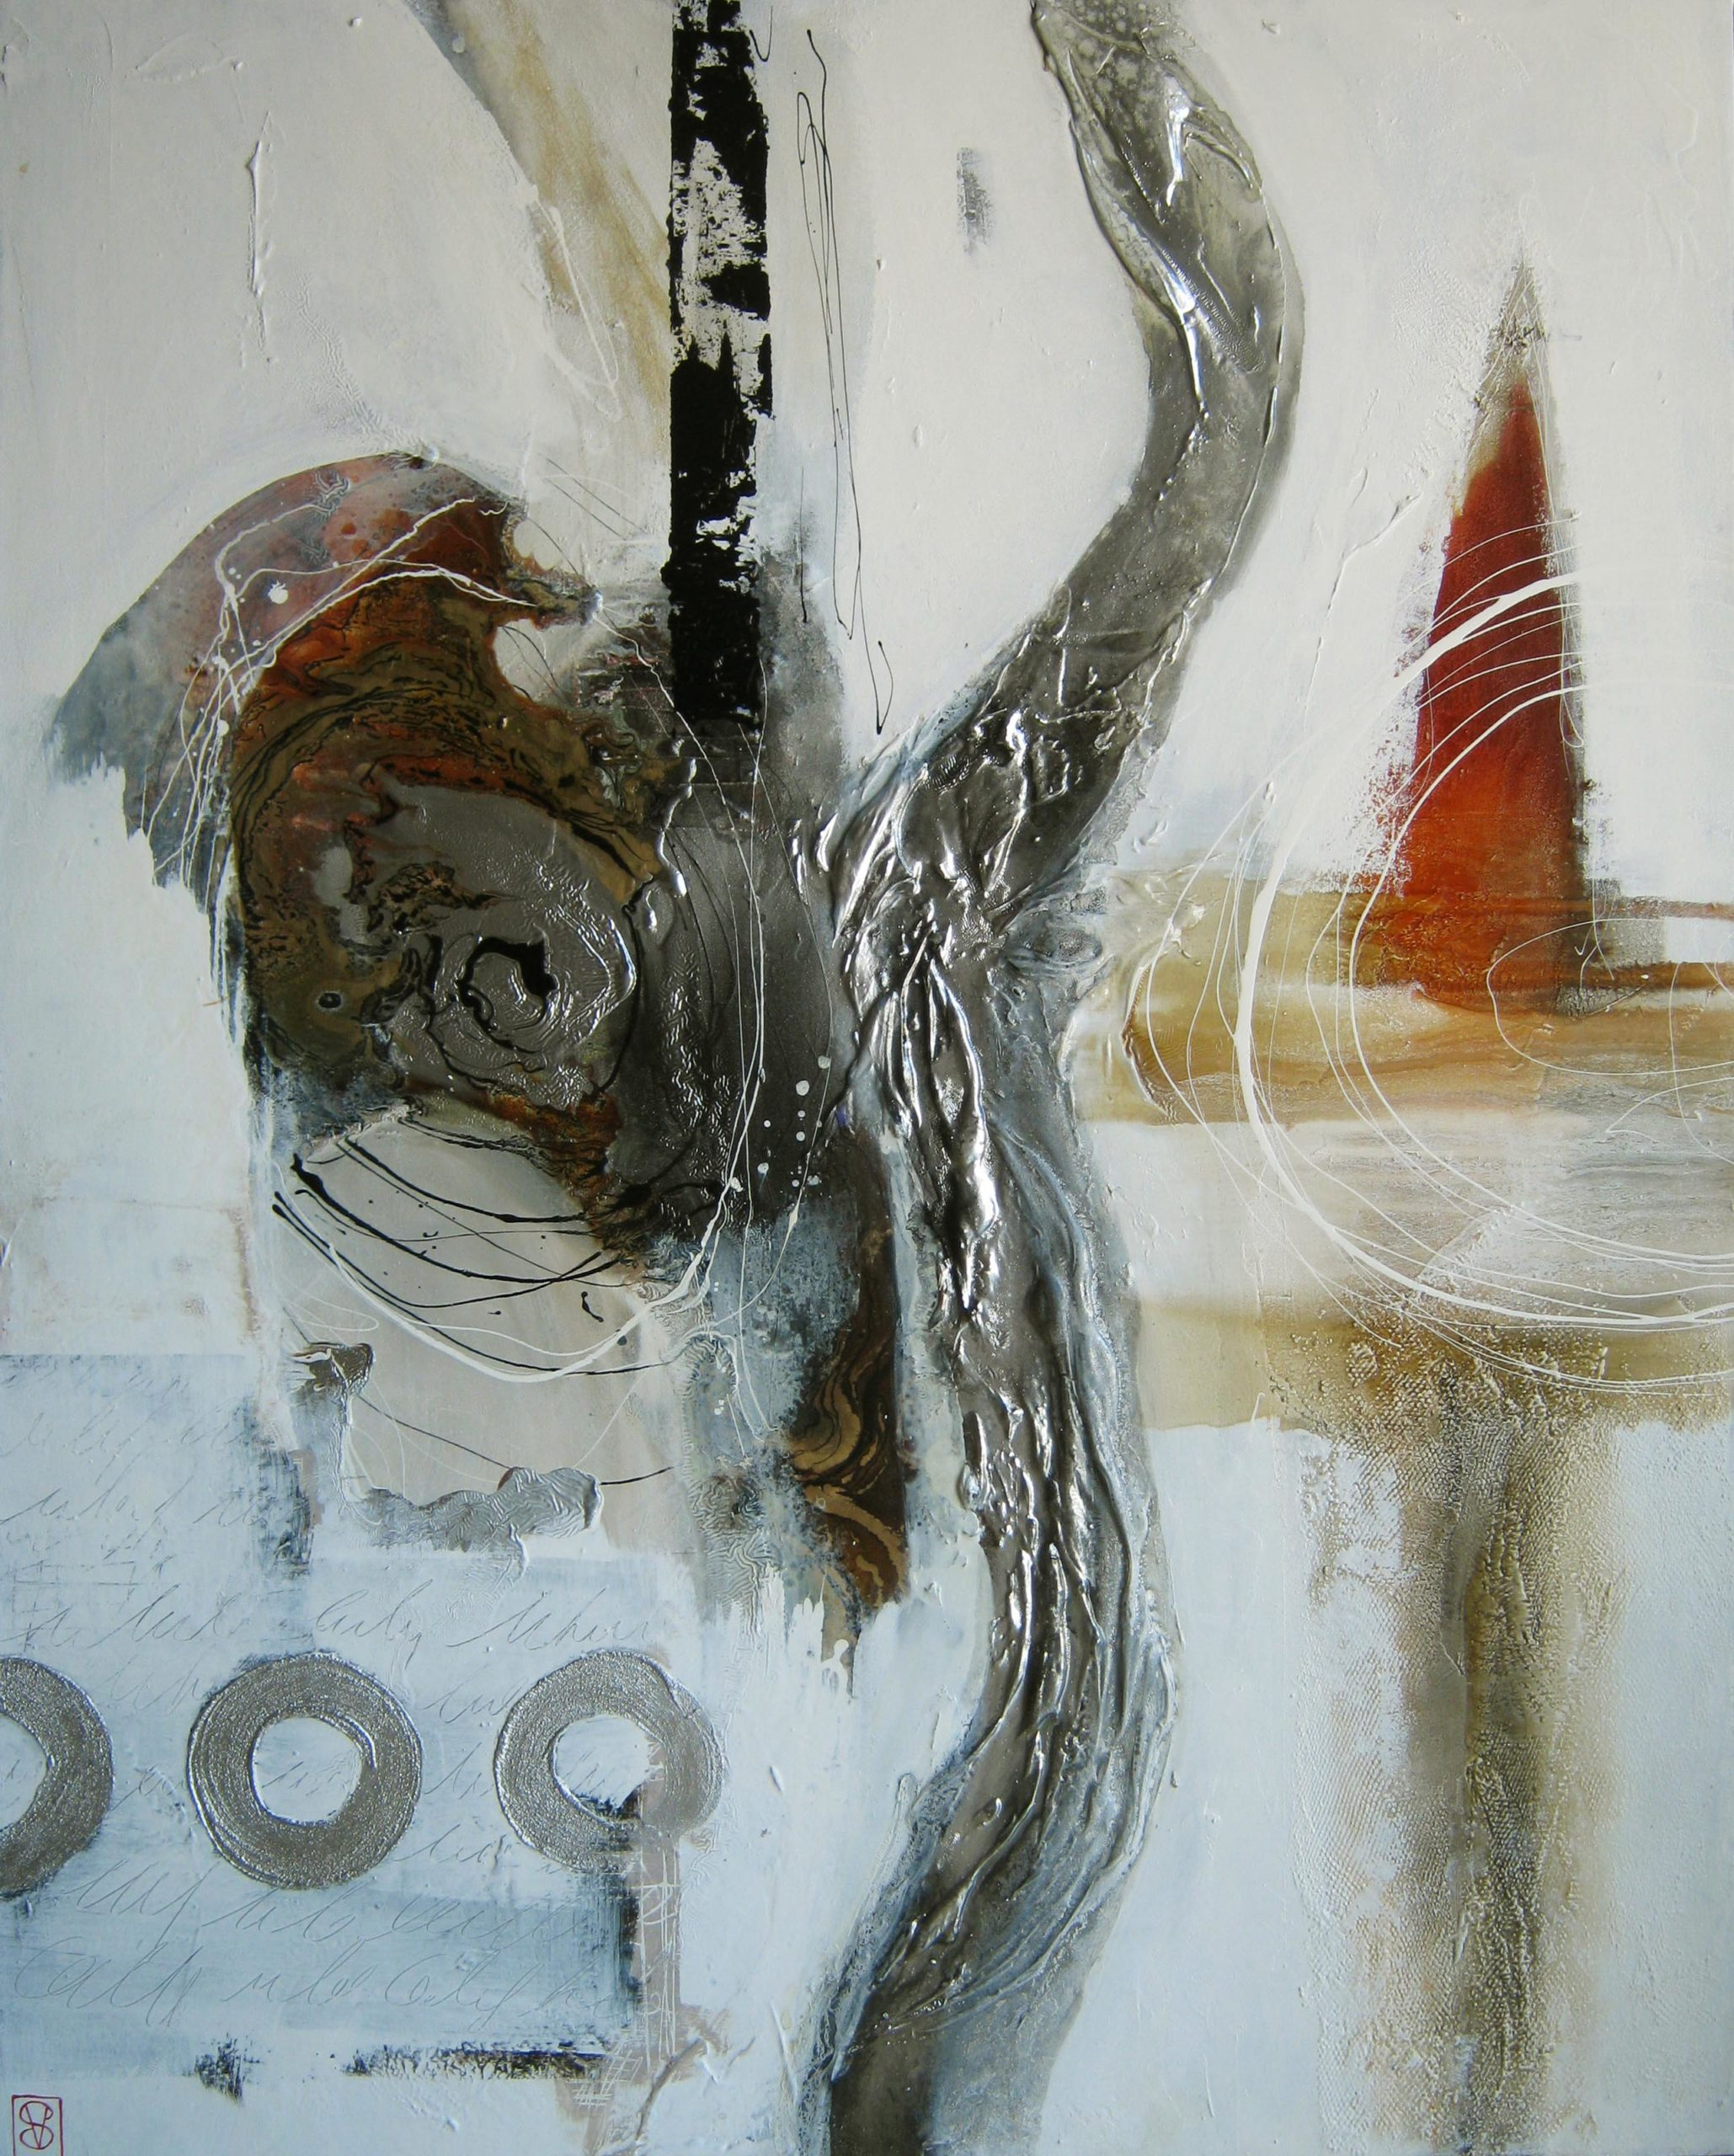 Vicky Sanders Abstract - Rocket